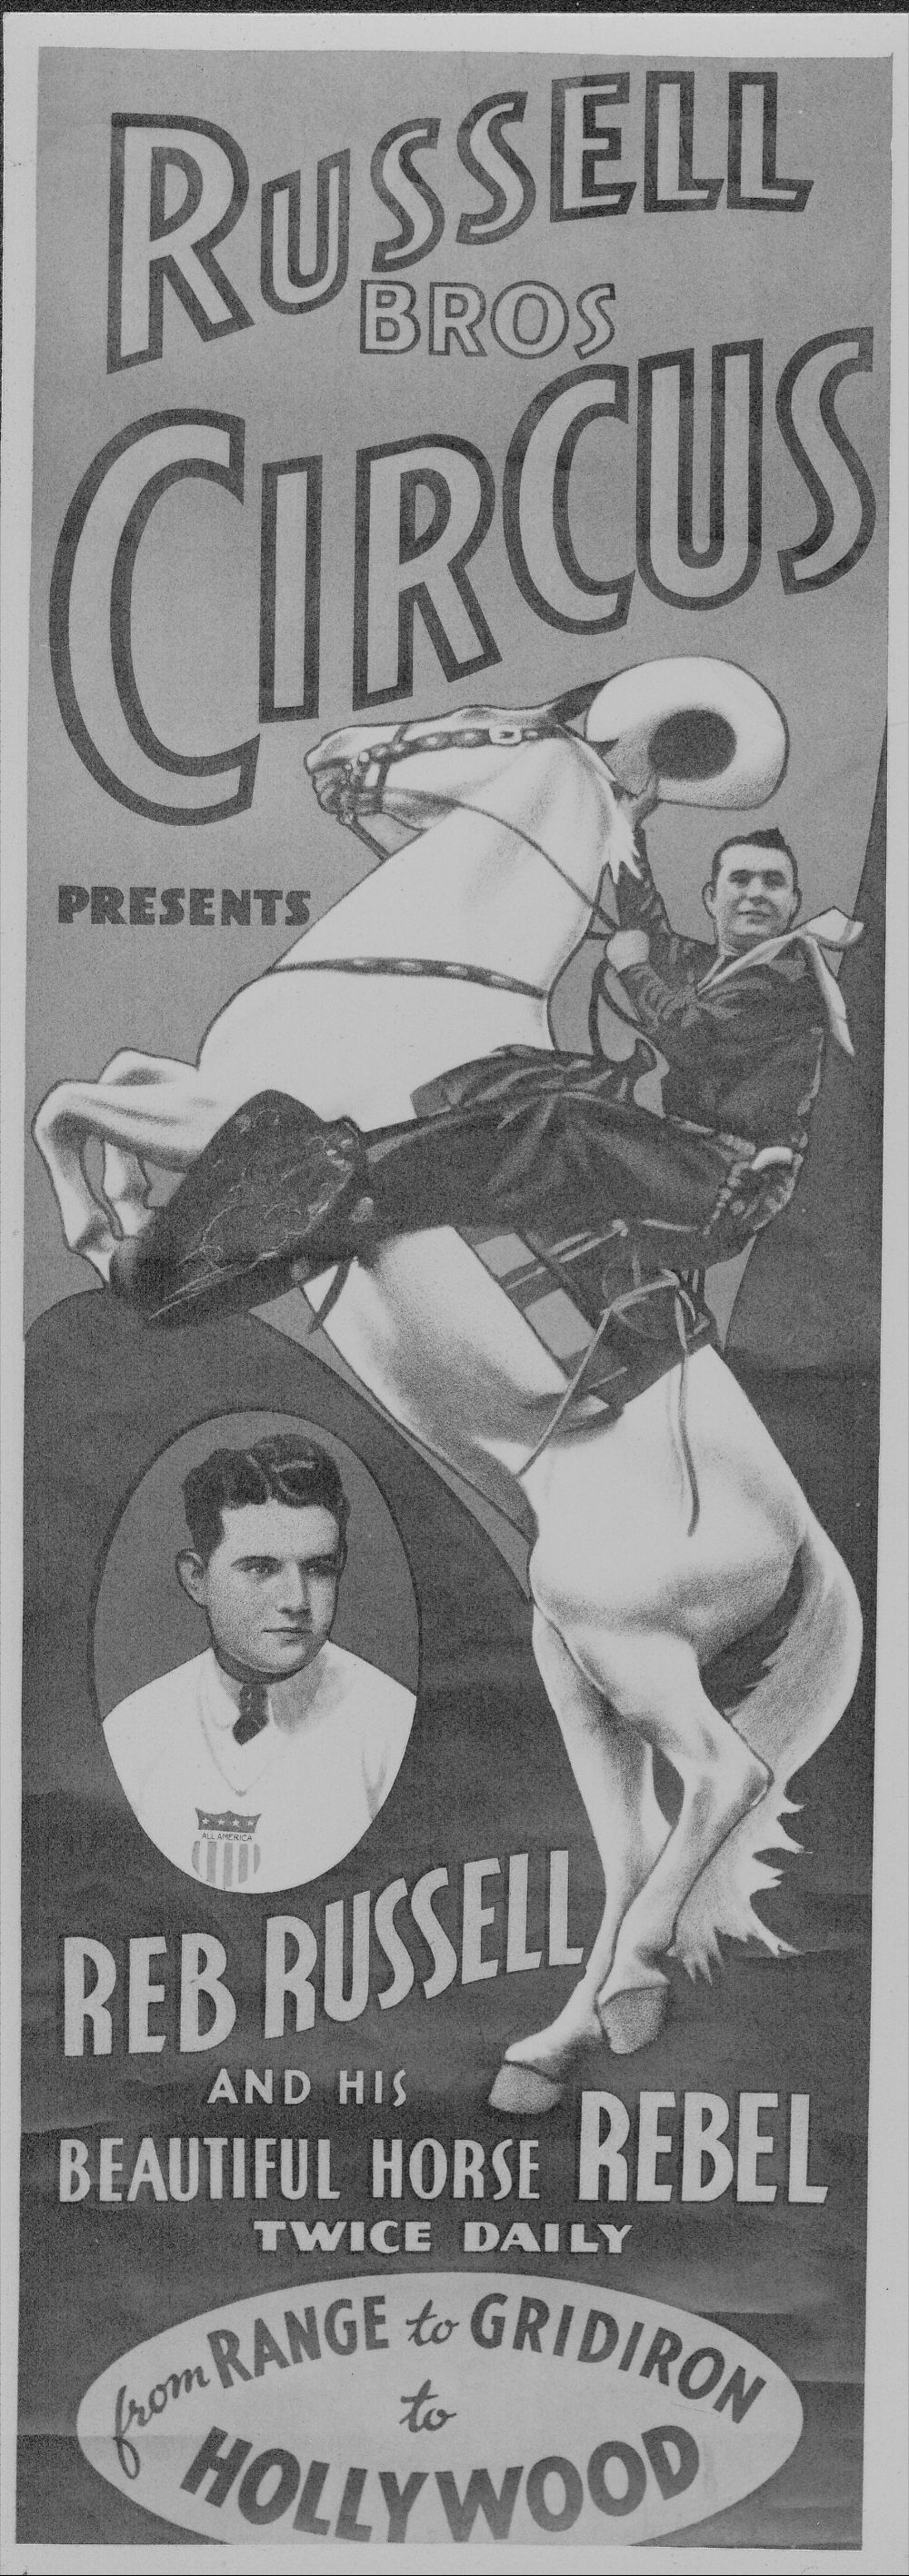 Advertisement for Russell Brothers Circus